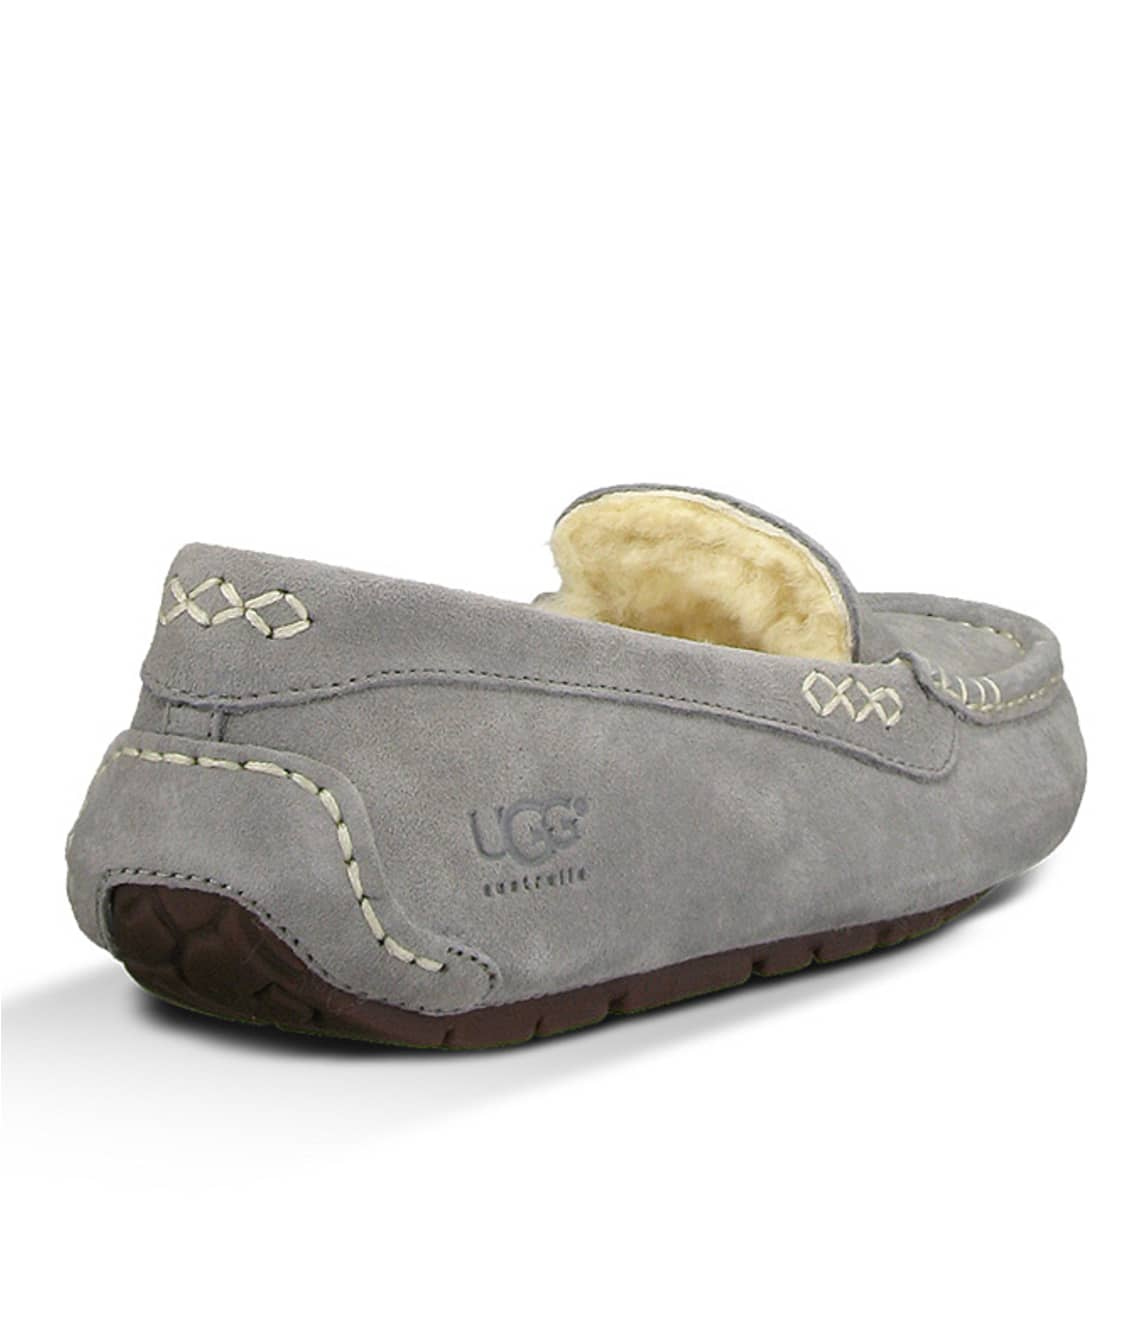 d9ab2a62a55 Ansley Slippers